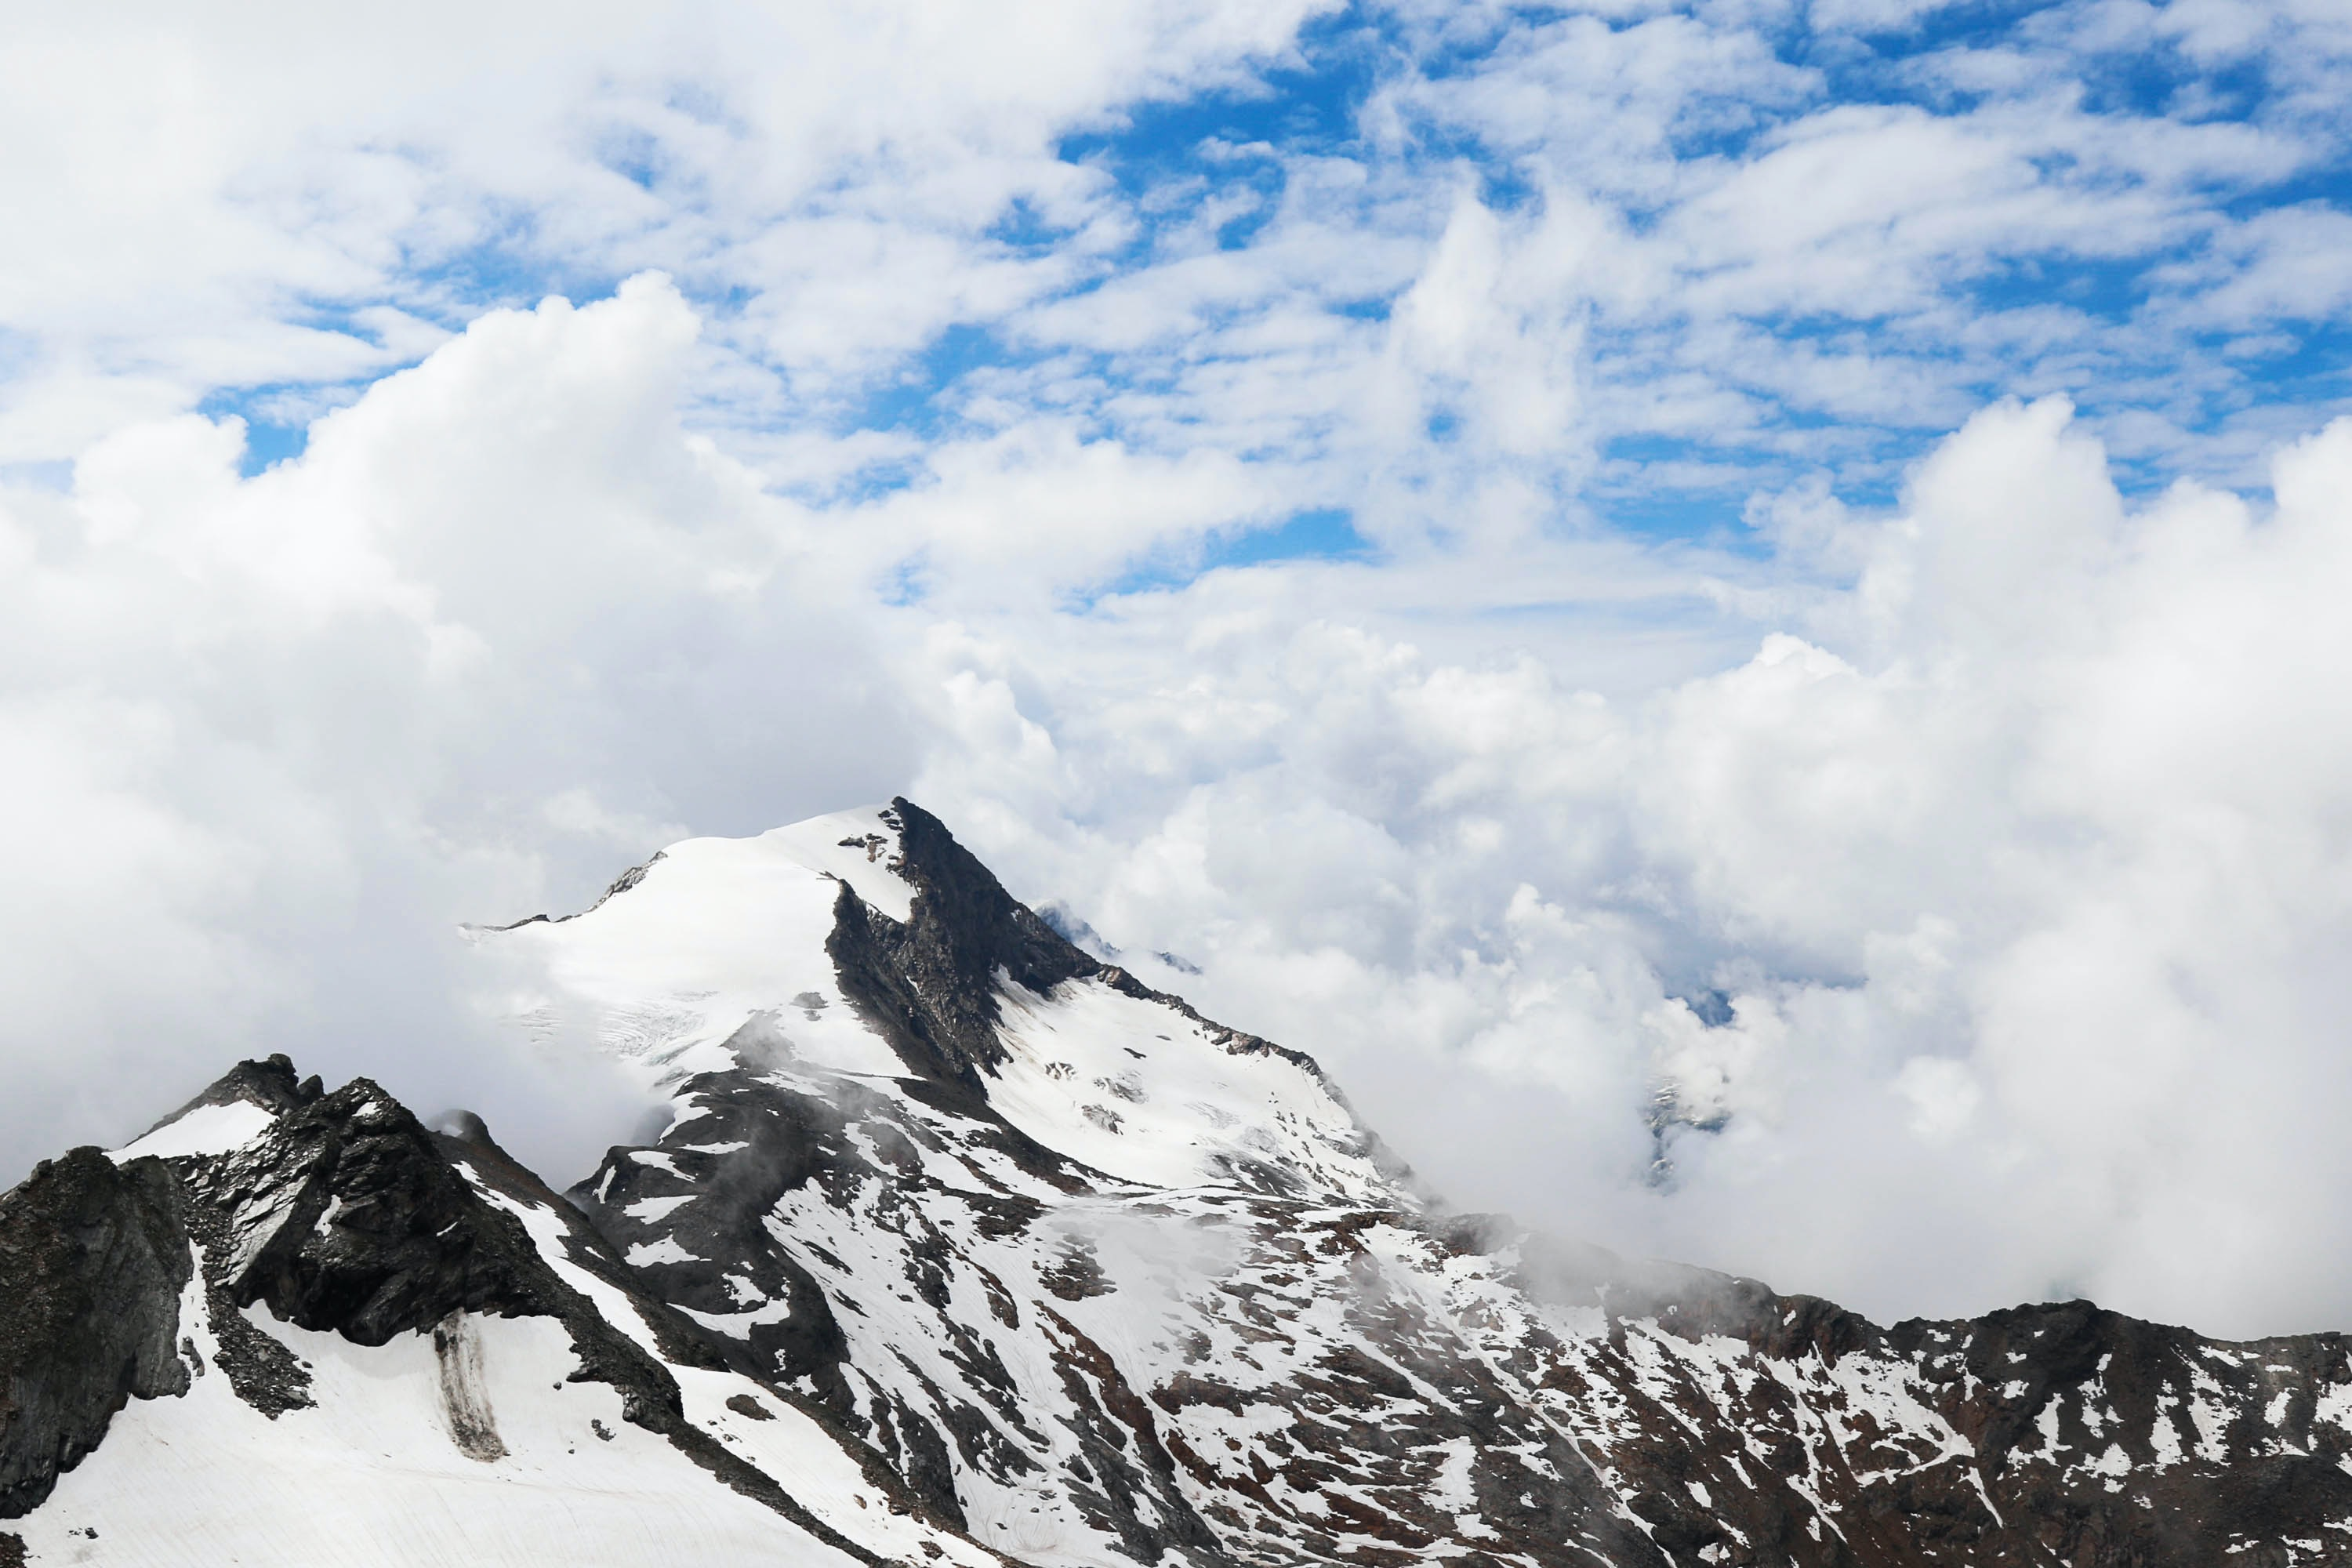 The snow-capped Kitzsteinhorn mountain enveloped in dense clouds